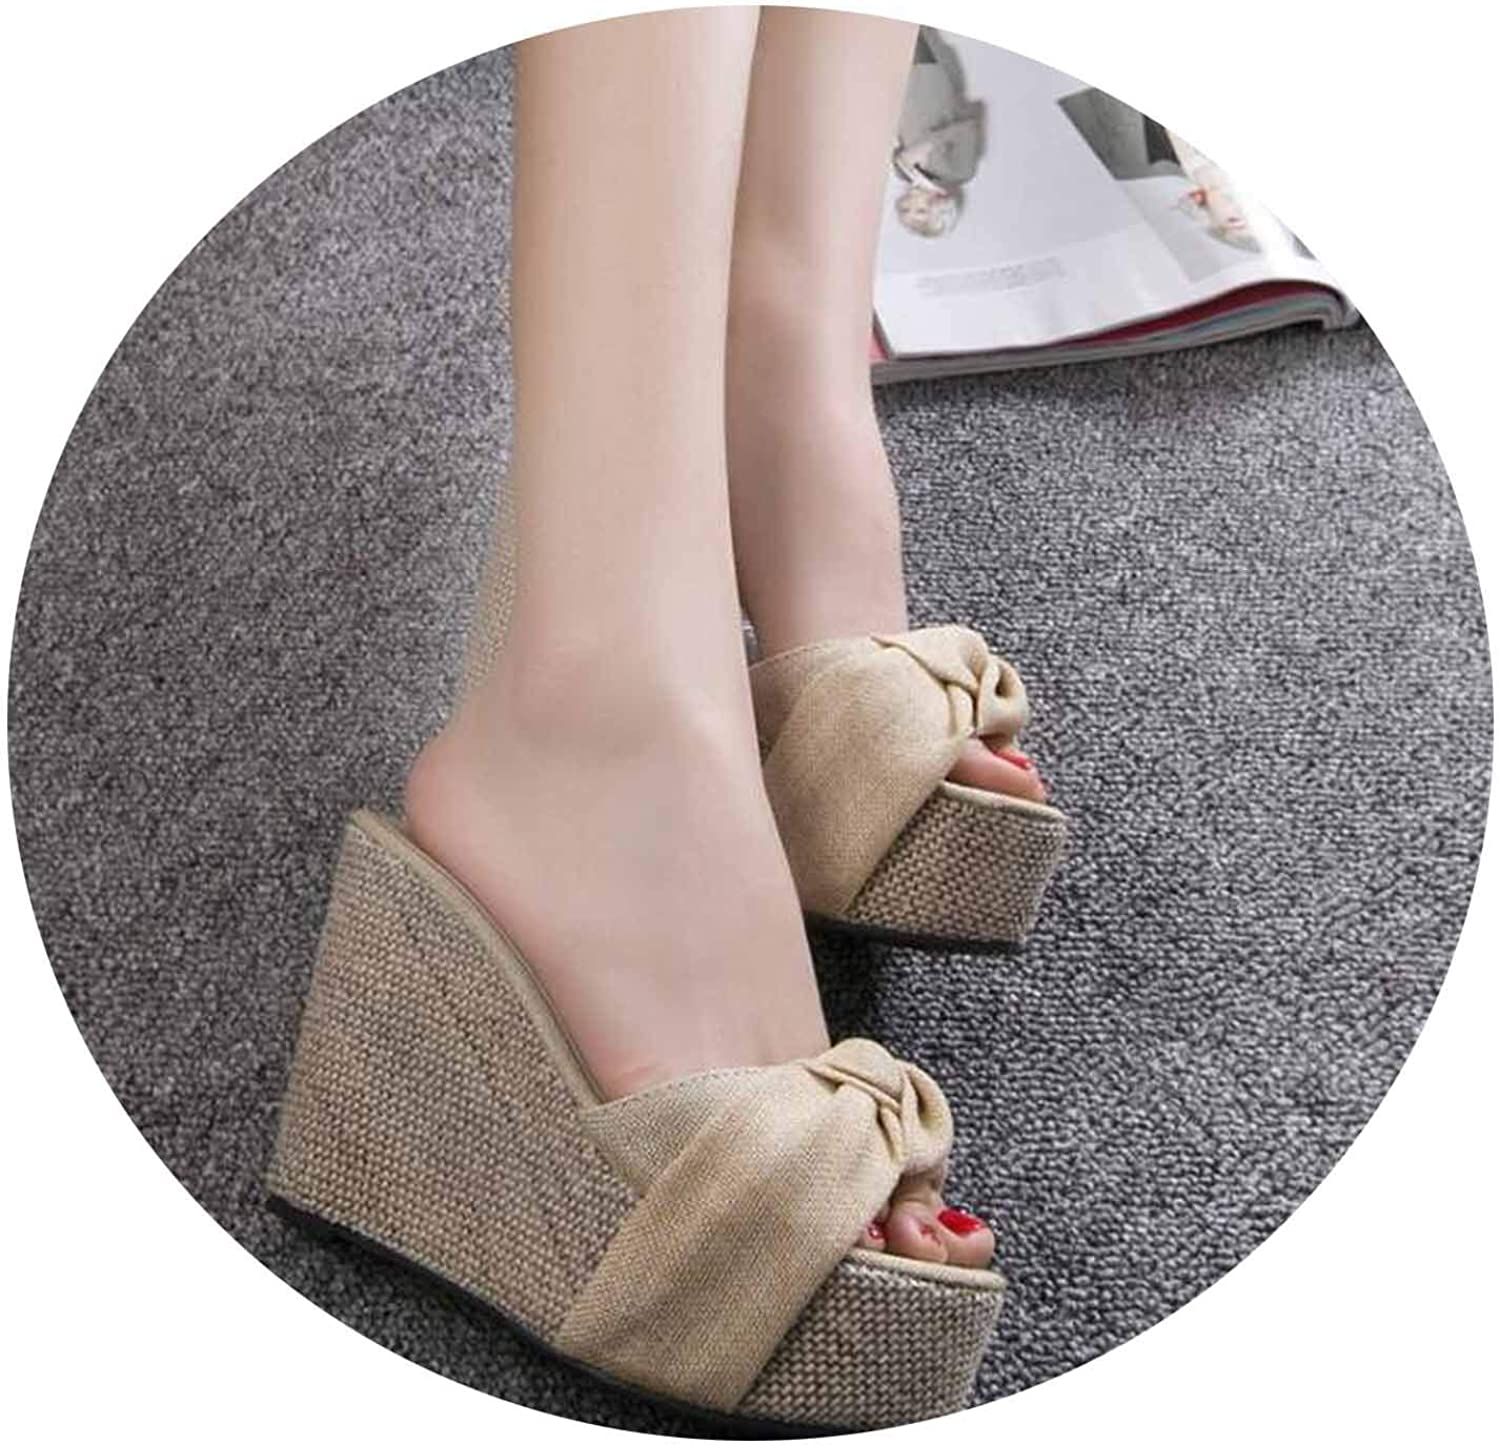 Summer Wedges Slippers Women shoes Rome Style Flower Slippers high-Heeled Waterproof Tai